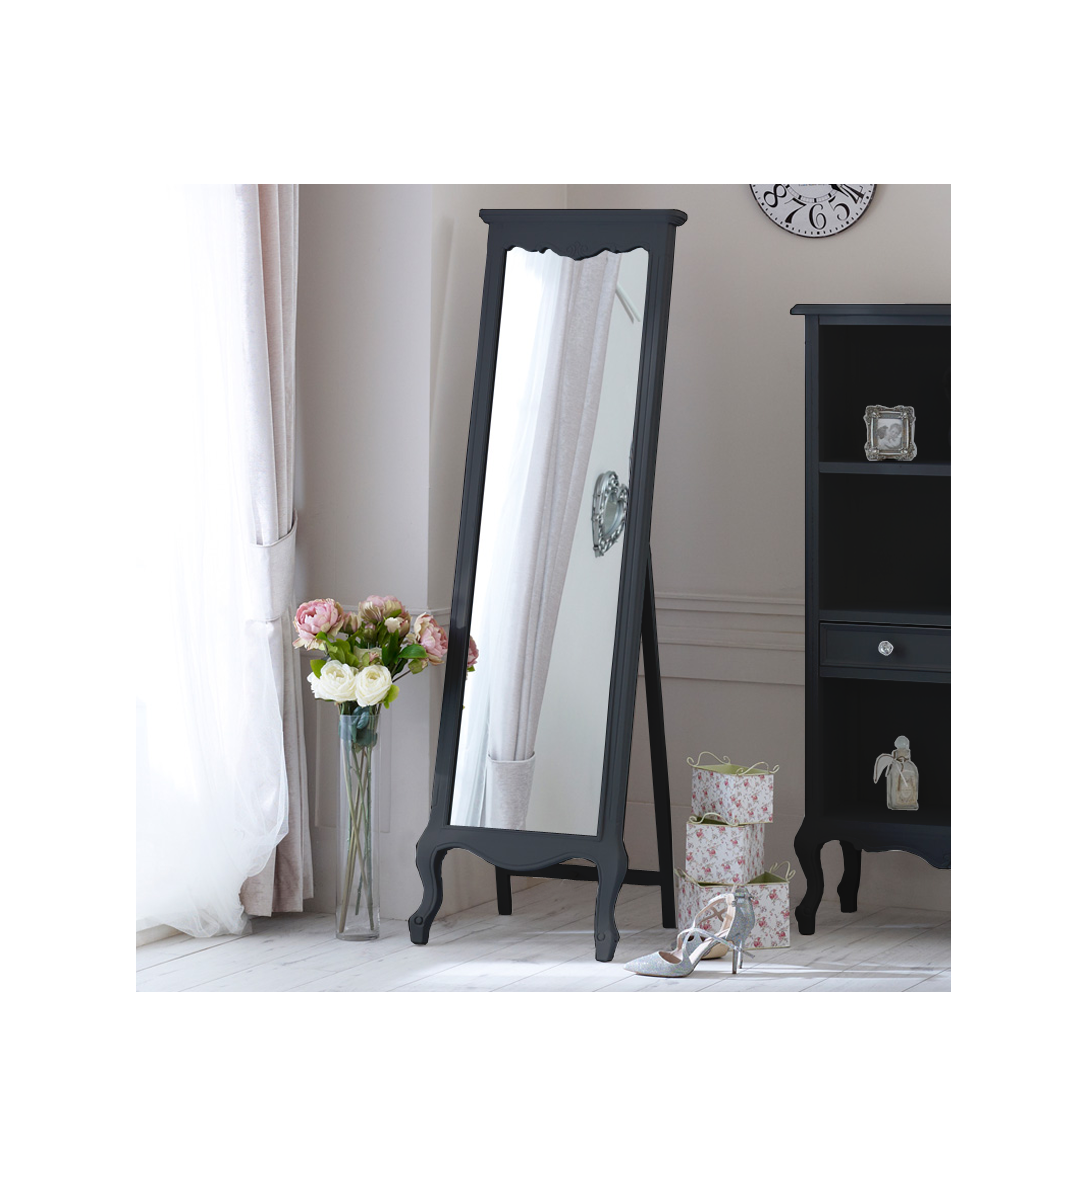 Home Decorative Thalo Standing Long Mirror for Living Room ...